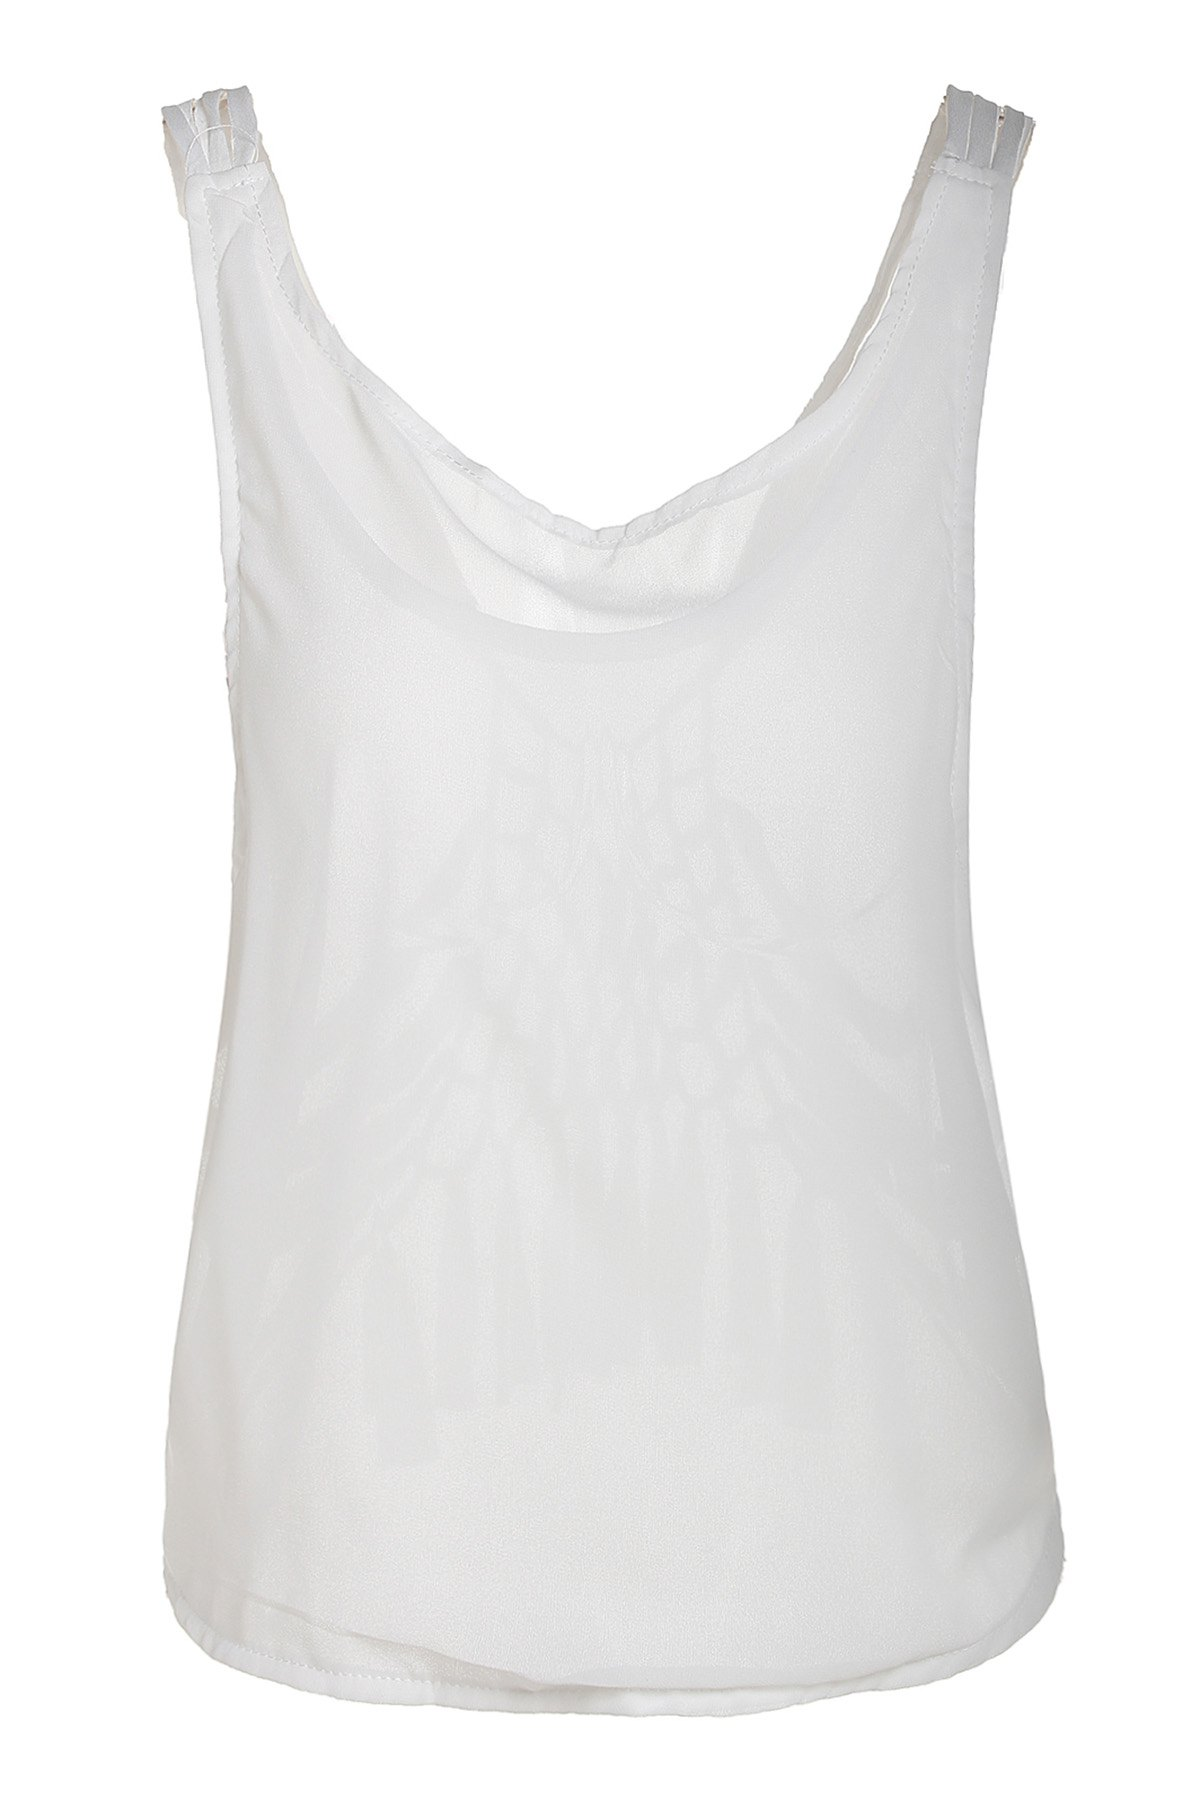 Sexy Scoop Neck See-Through Hollow Out Women's Beachwear - WHITE S